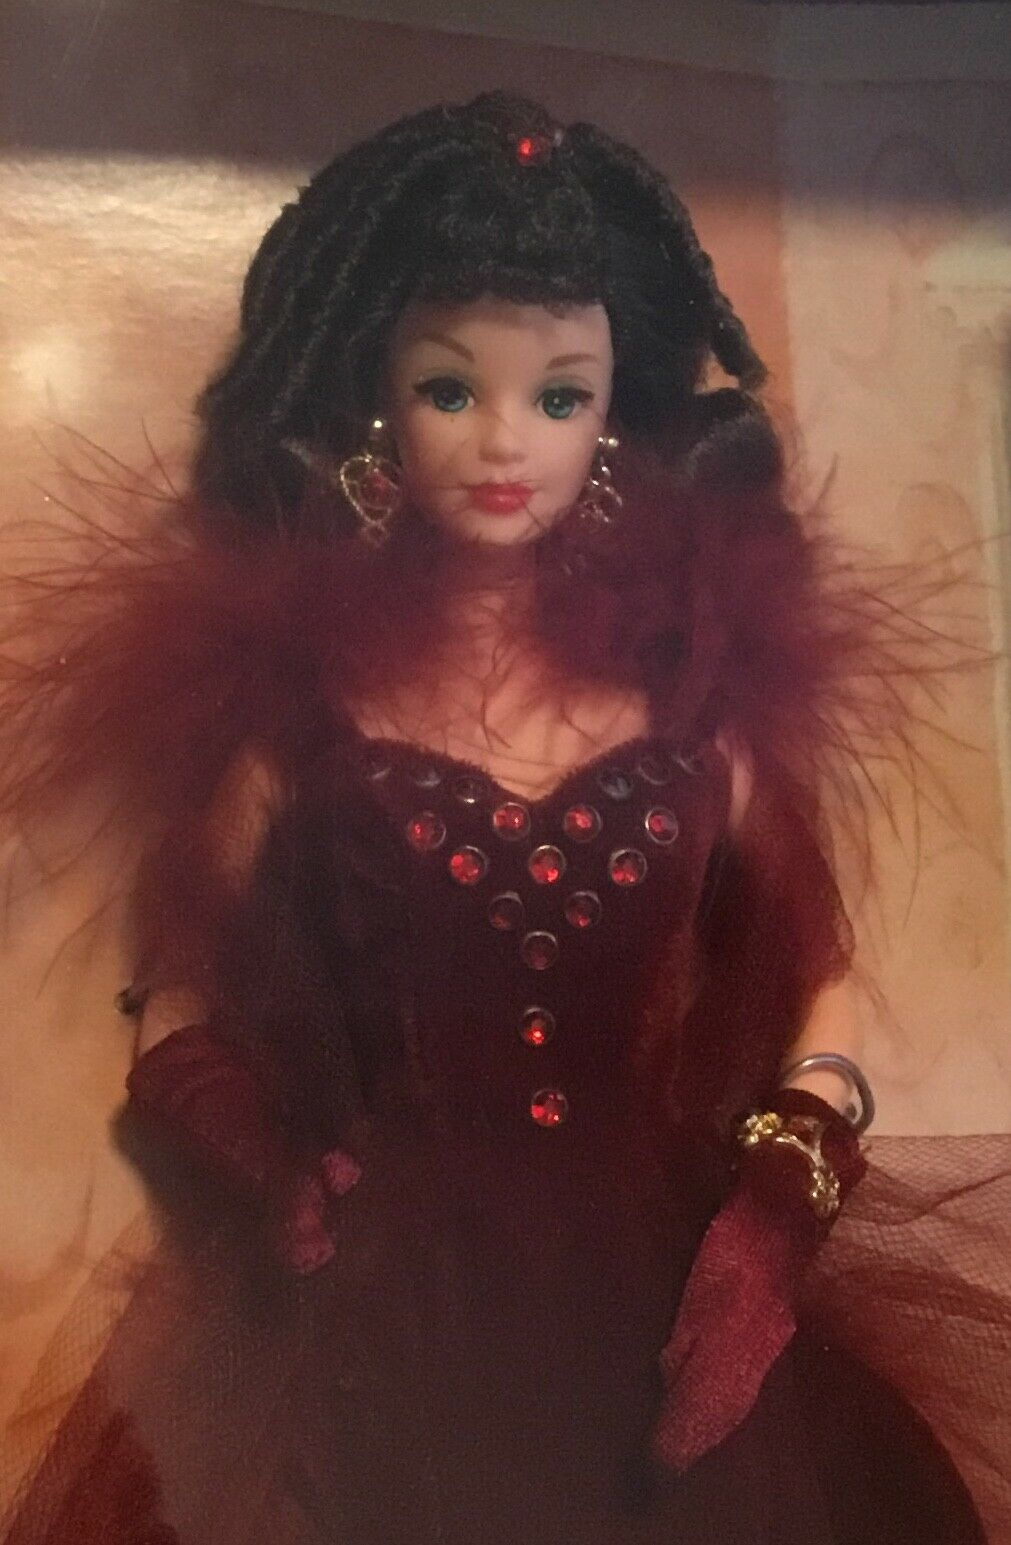 Hollywood Legends Gone with the Wind Wind Wind Scarlett O'Hara Barbie NRFB rot dress d7dc92